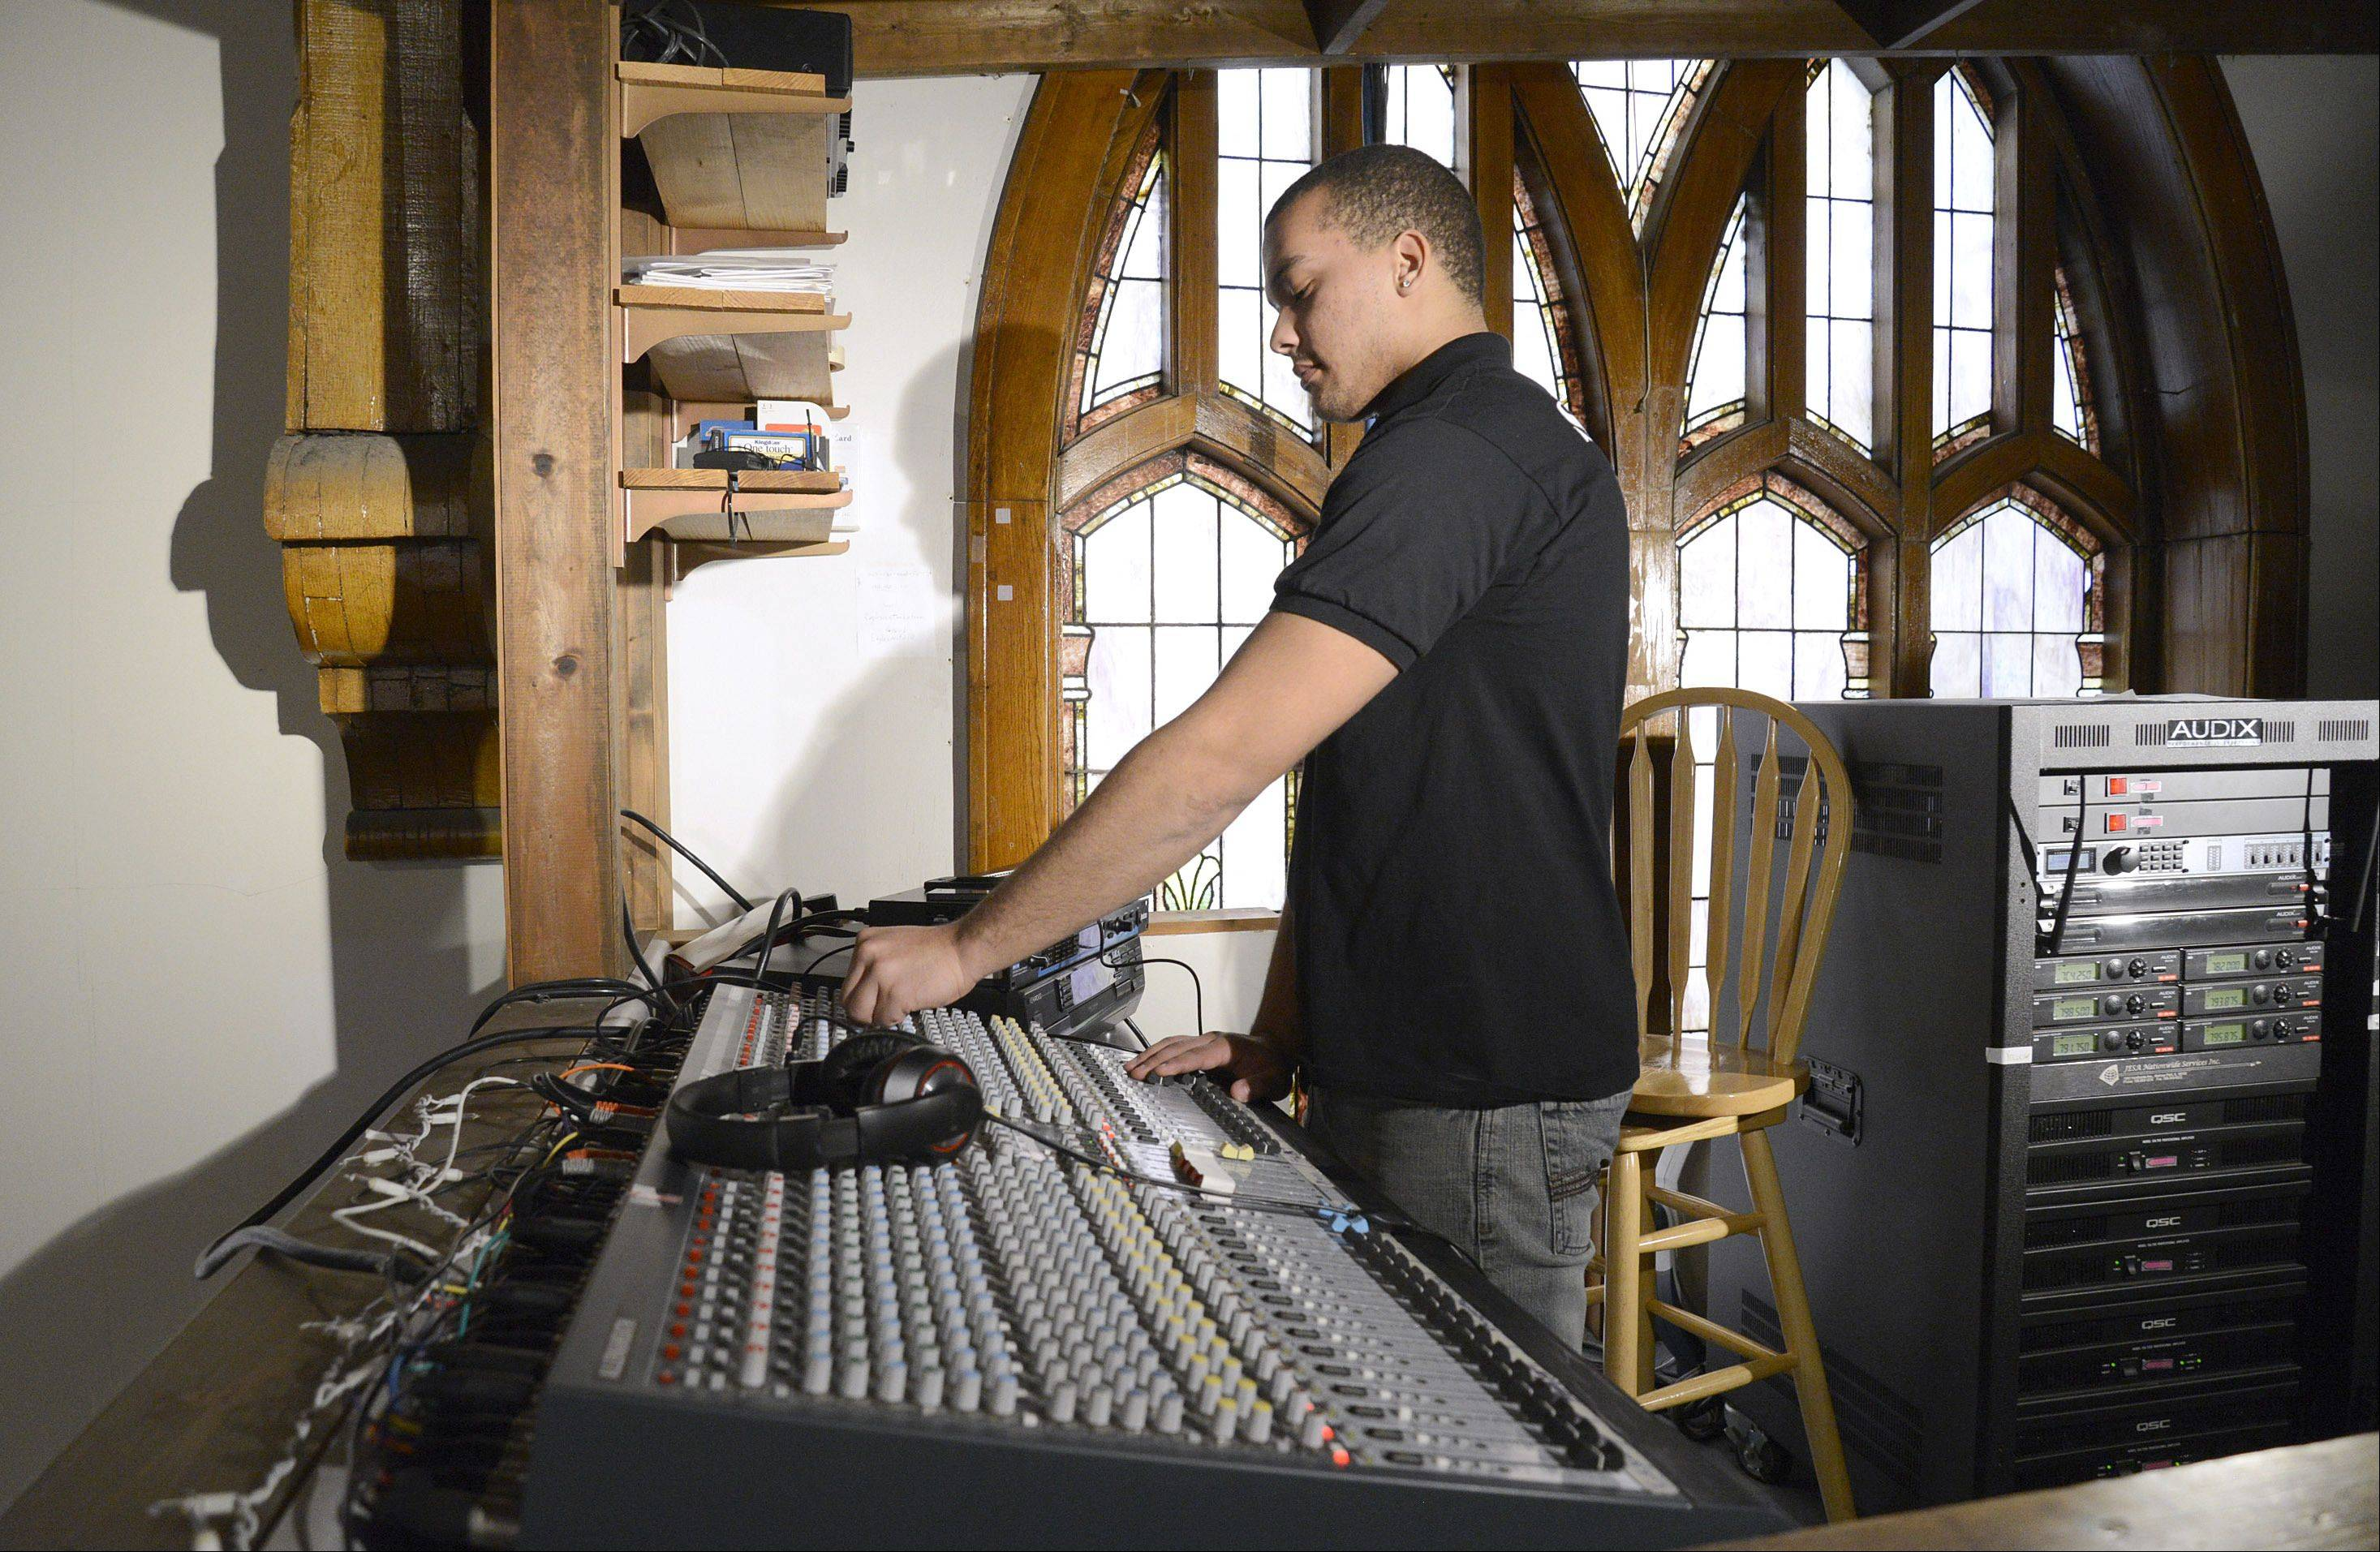 Breje Whitt, 17, operates the sound board at Family Life Church in Elgin. After spending time touring with a nationally renowned Christian rock band, Breje has returned home to Elgin and launched his own sound/lighting/DJ business called Diamond Cut Productions.